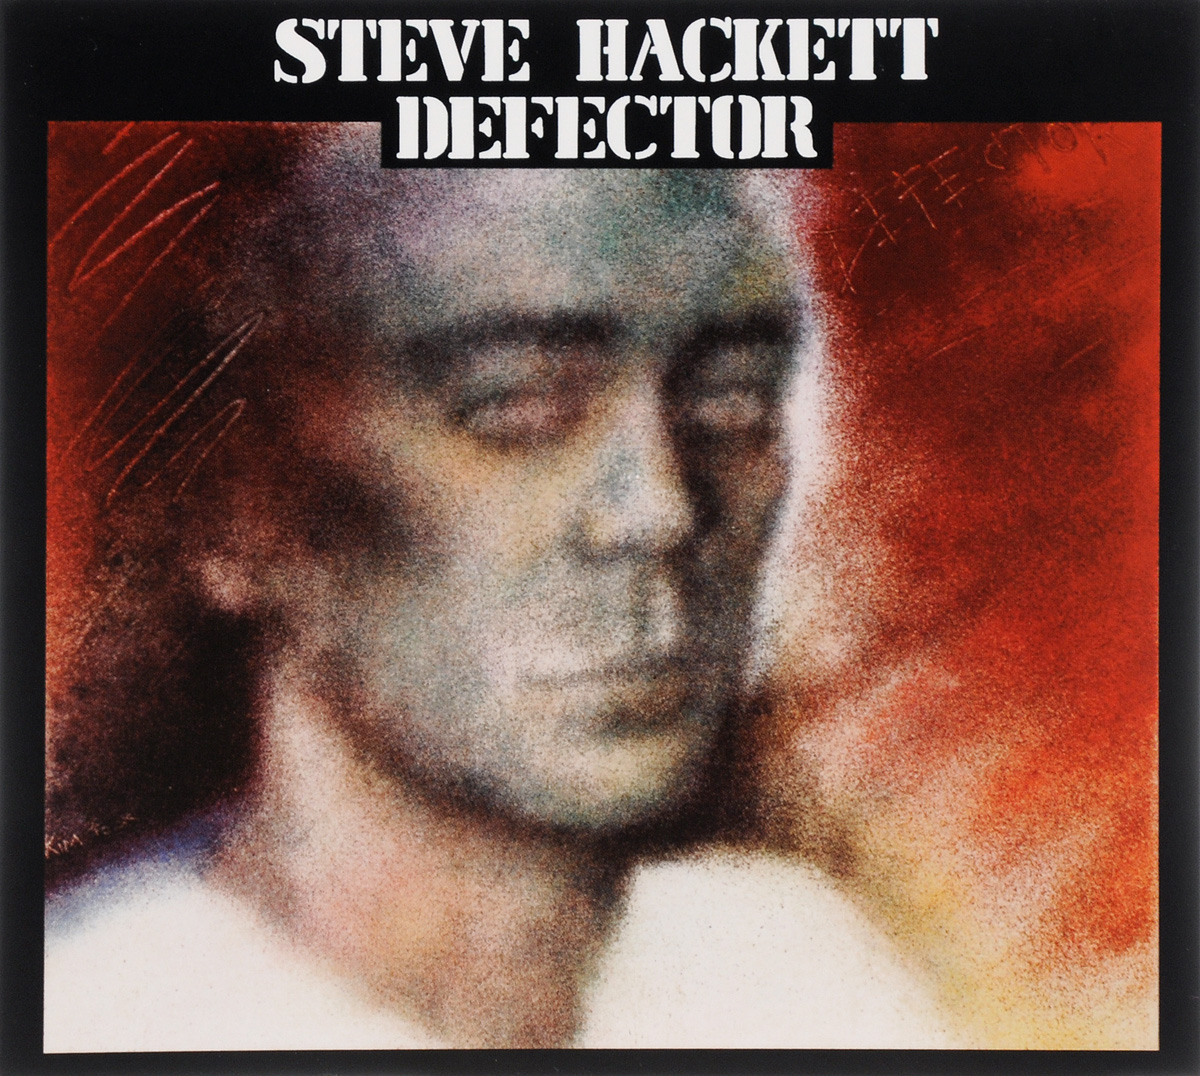 Steve Hackett. Defector (2 CD + DVD)